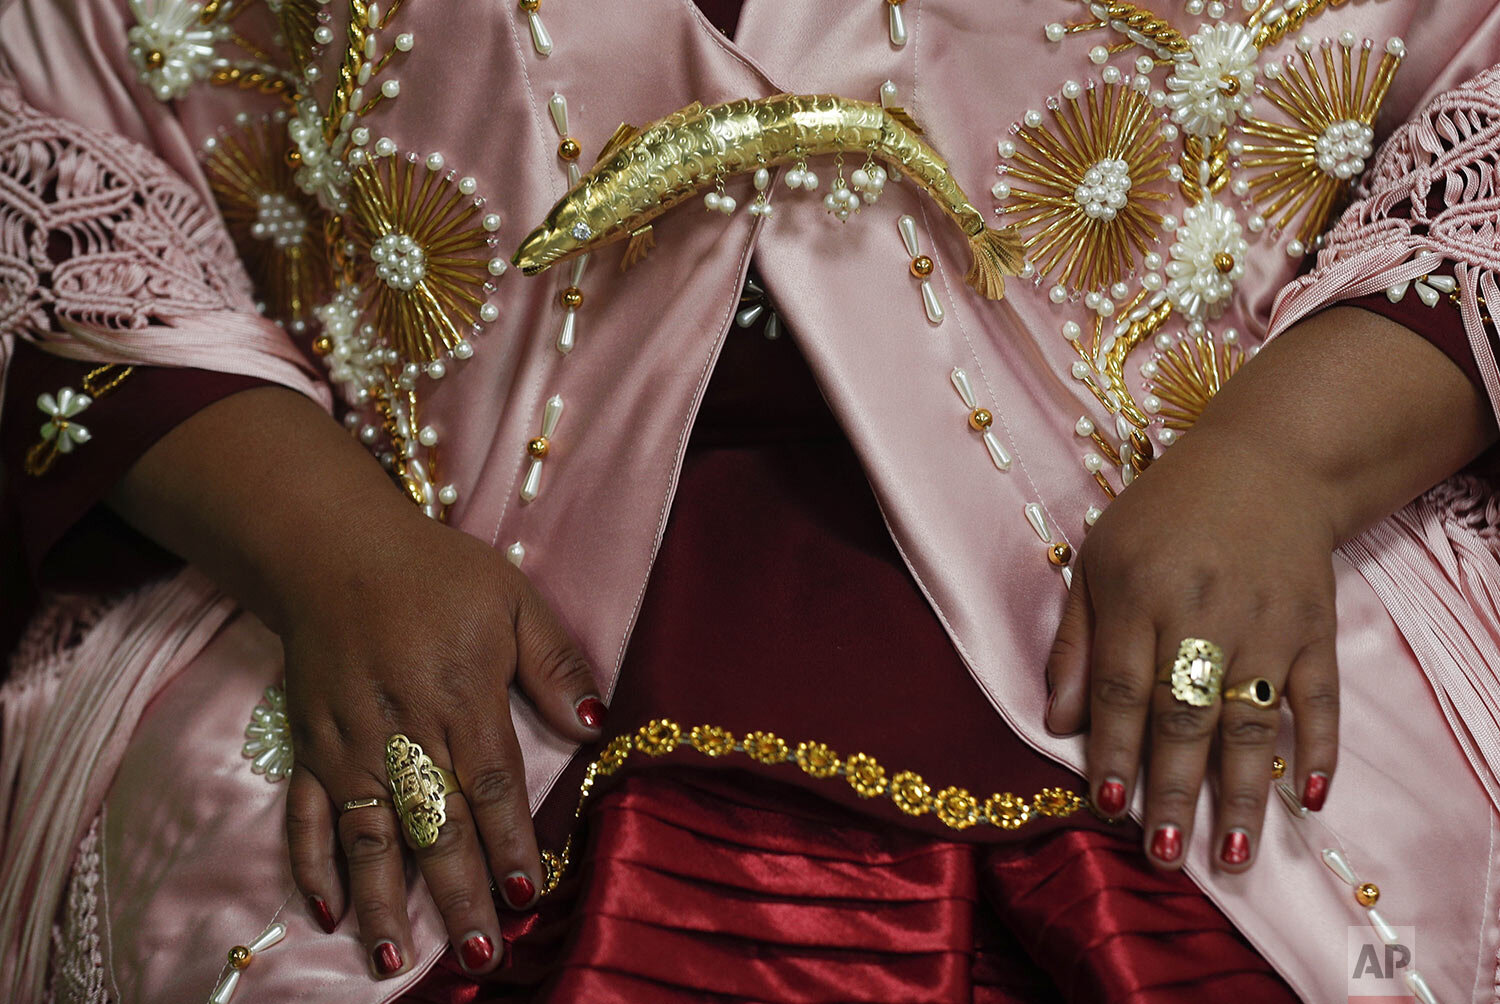 A woman shows off her jewelry before performing at a Chola fashion show in La Paz, Bolivia, Friday, Dec. 4, 2020, an event that designers and manufacturers of Chola clothing hope reactivates their economy. (AP Photo/Juan Karita)